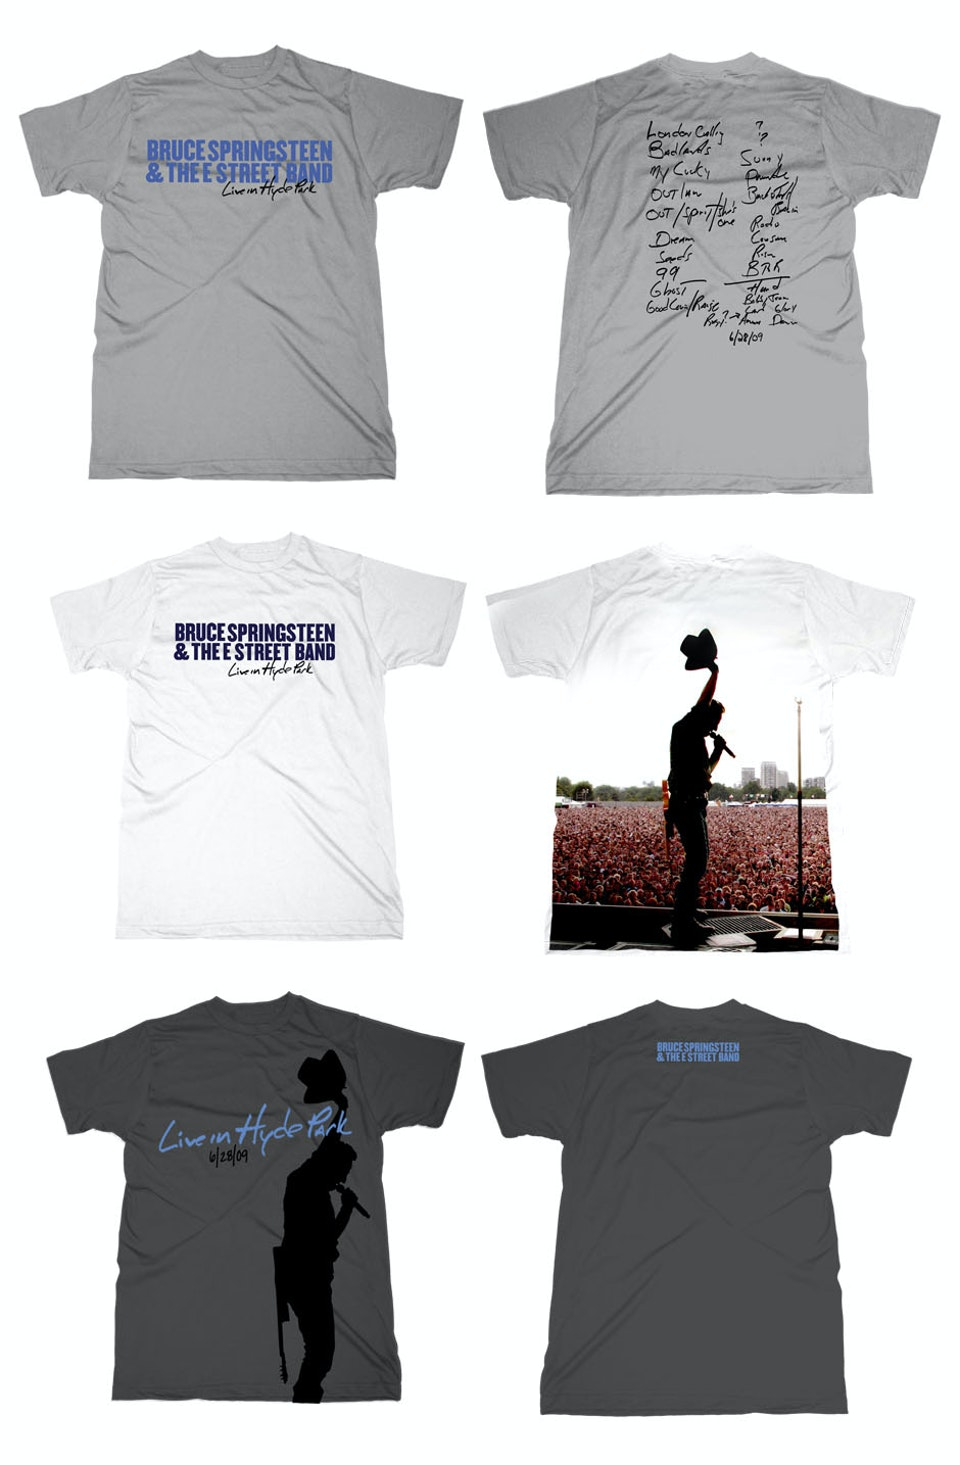 Live in London - Tees